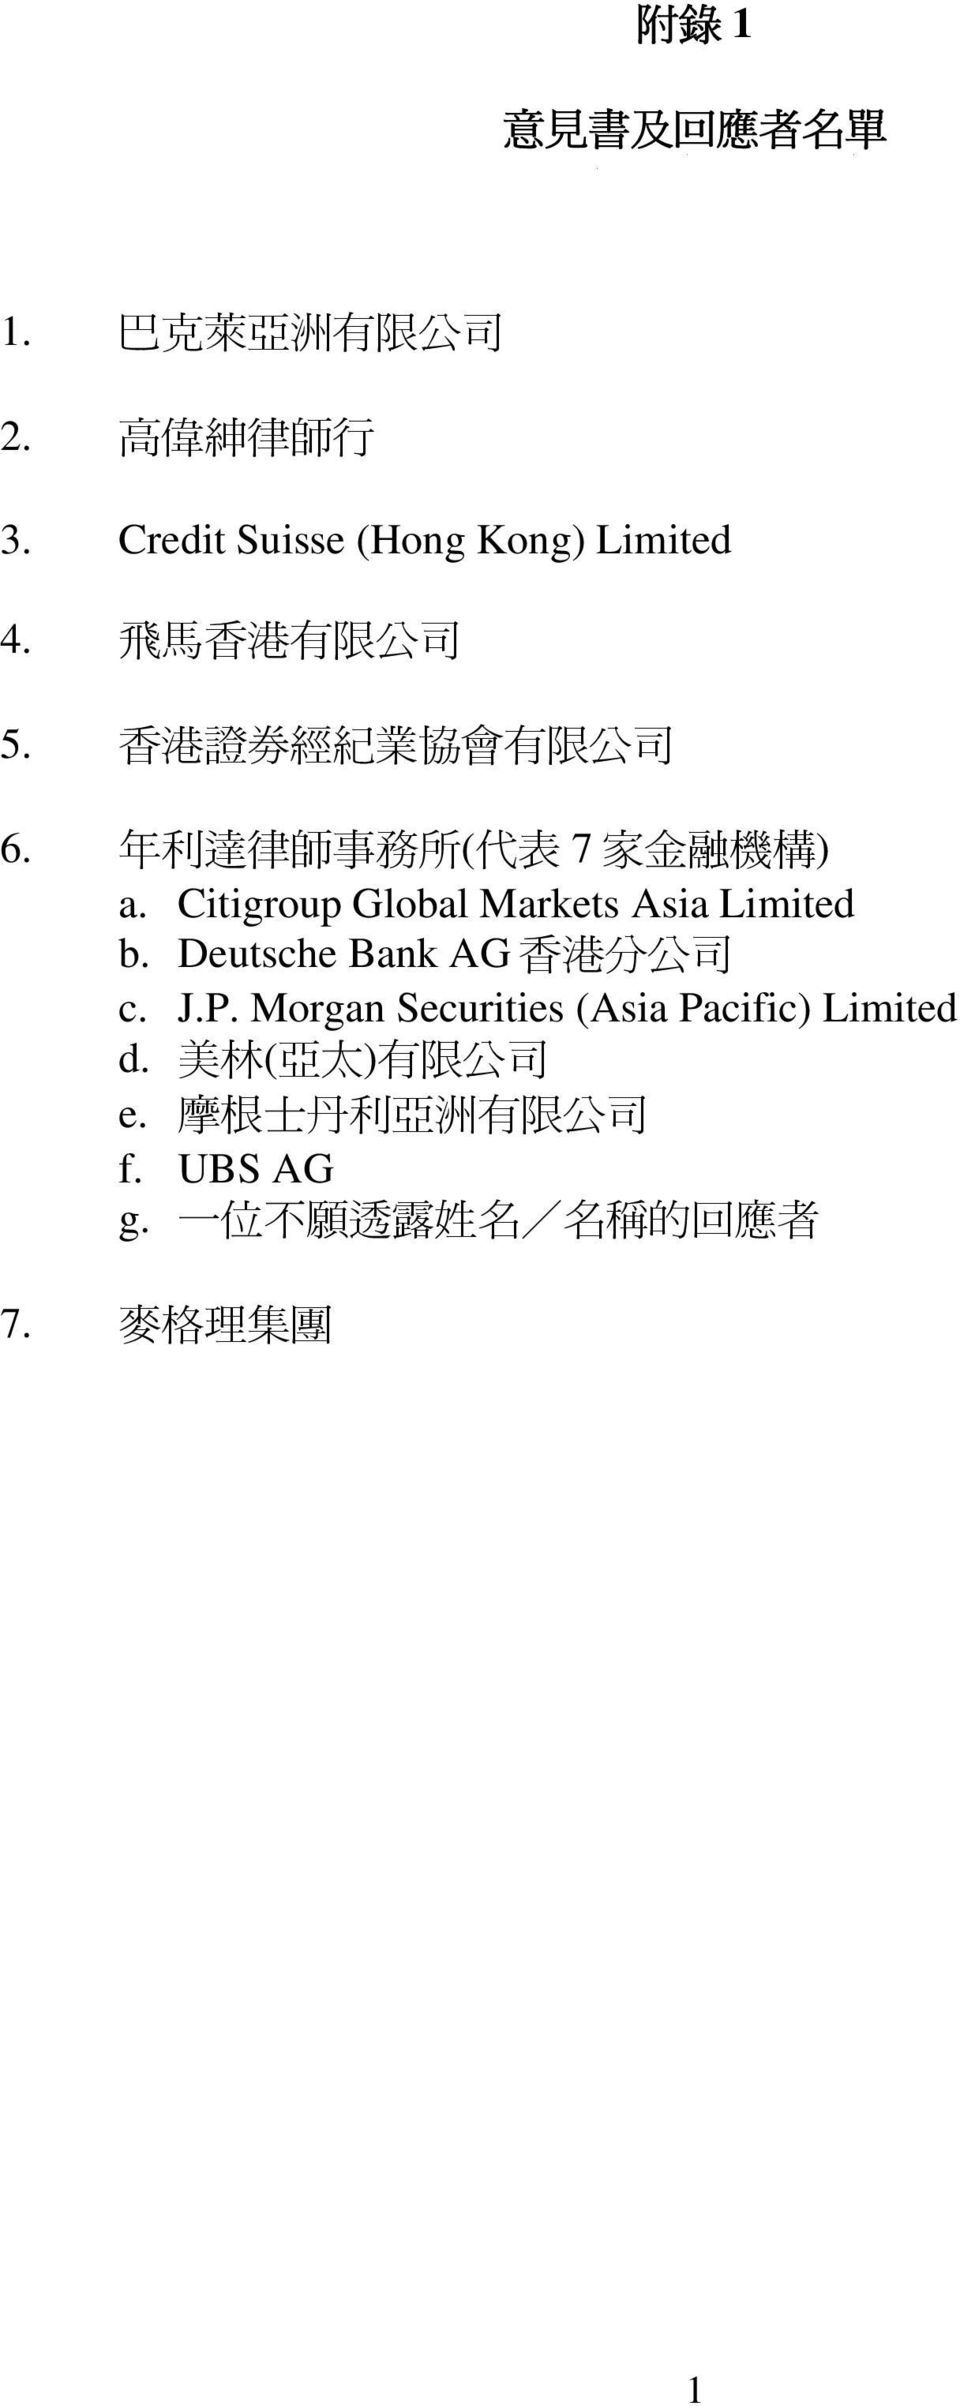 Citigroup Global Markets Asia Limited b. Deutsche Bank AG 香 港 分 公 司 c. J.P.